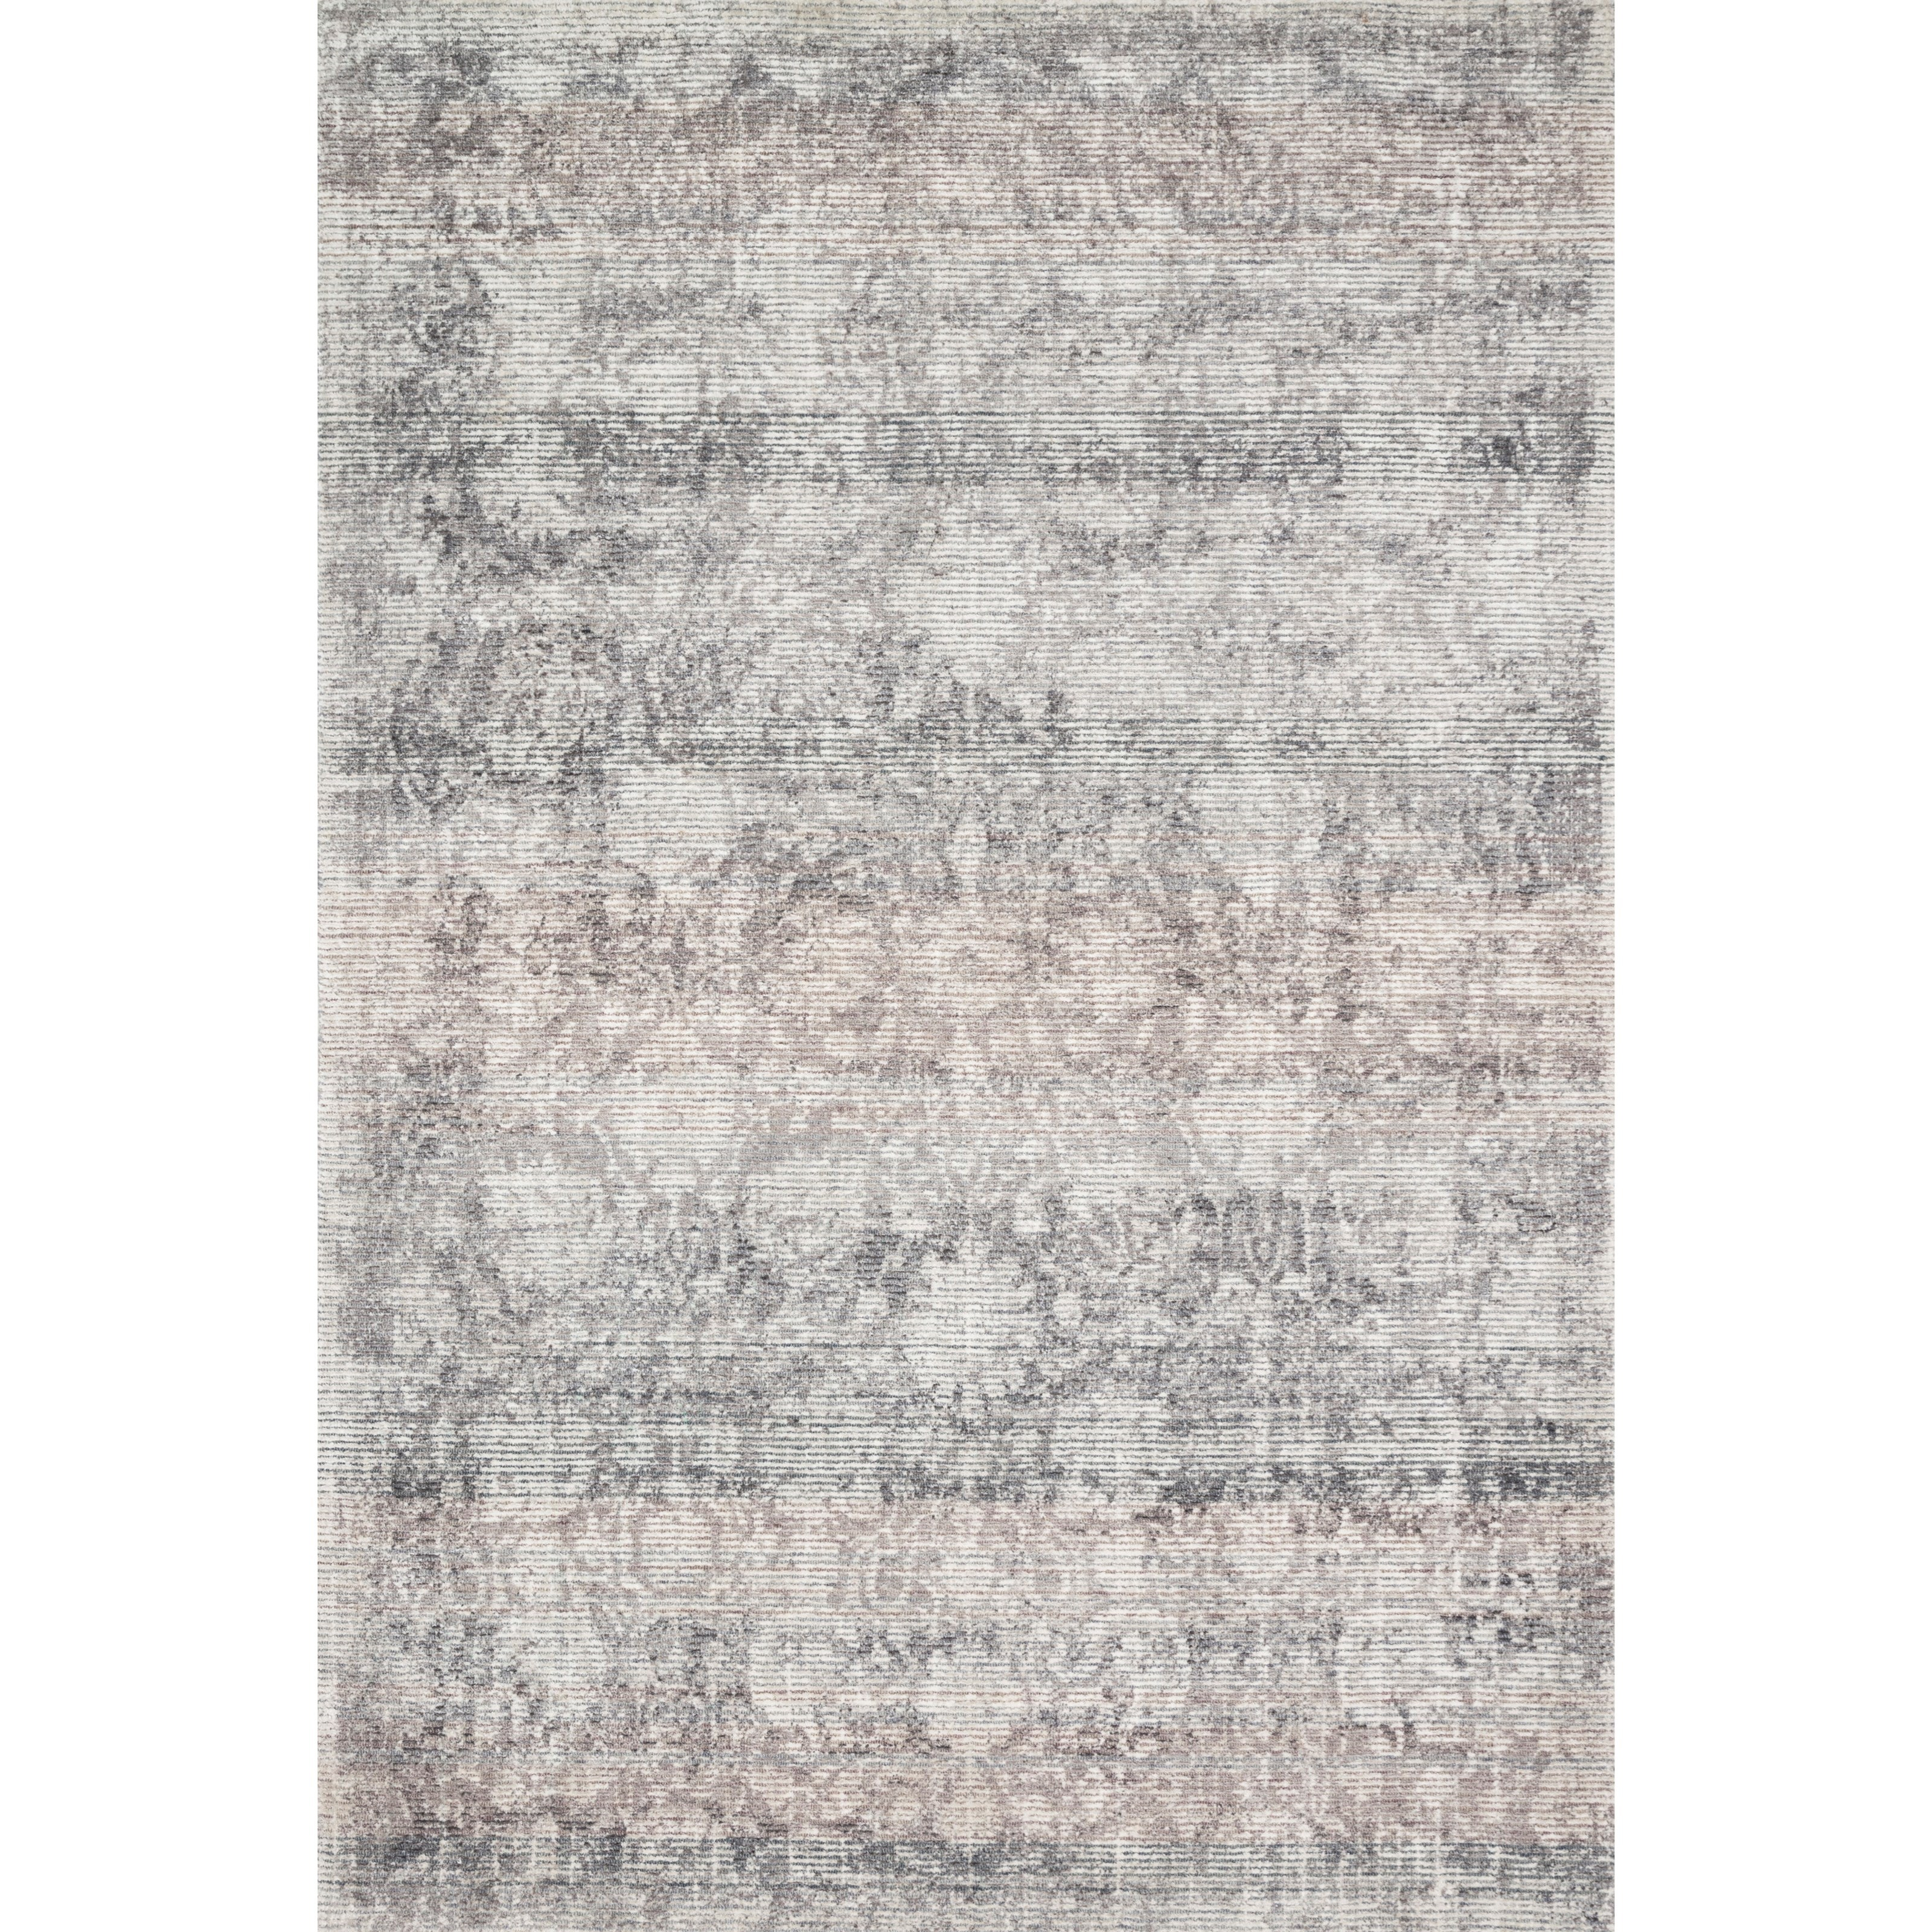 """Rumi 2'0"""" x 3'0"""" Pewter Rug by Loloi Rugs at Virginia Furniture Market"""